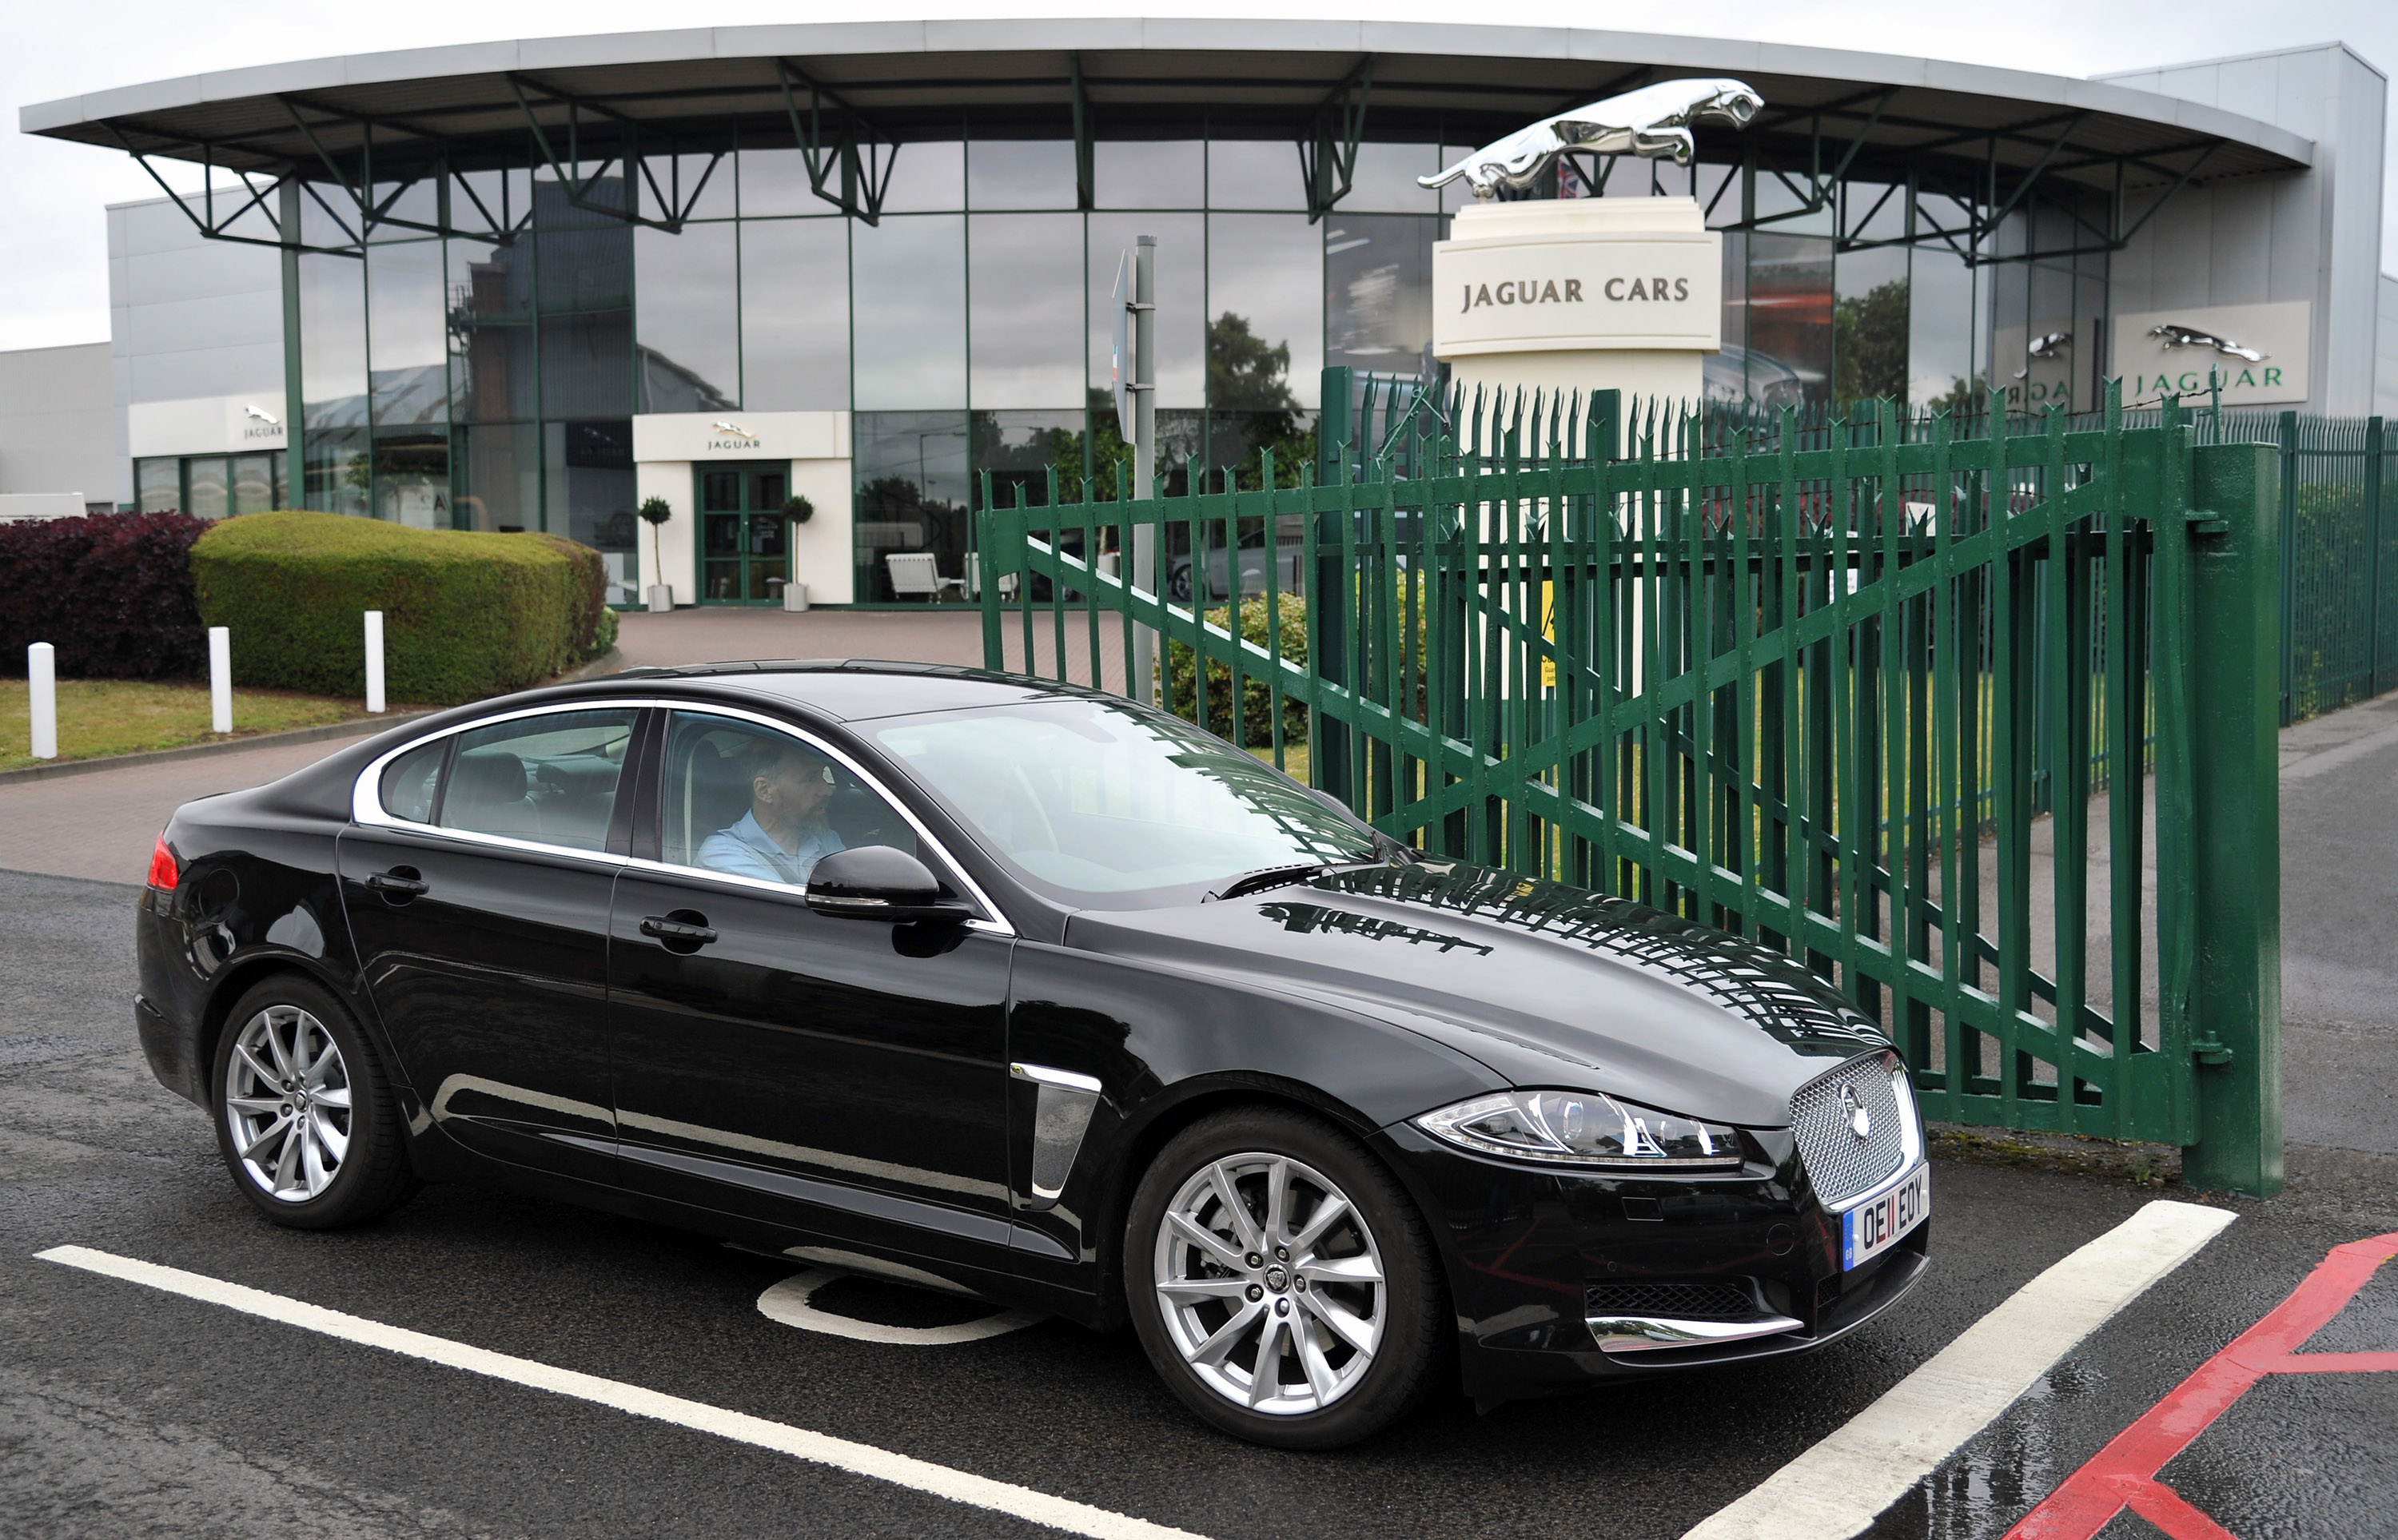 to xf in r jaguar industry new fleet trk values sport offer dynamic residual jaguarxf advertisement best news class